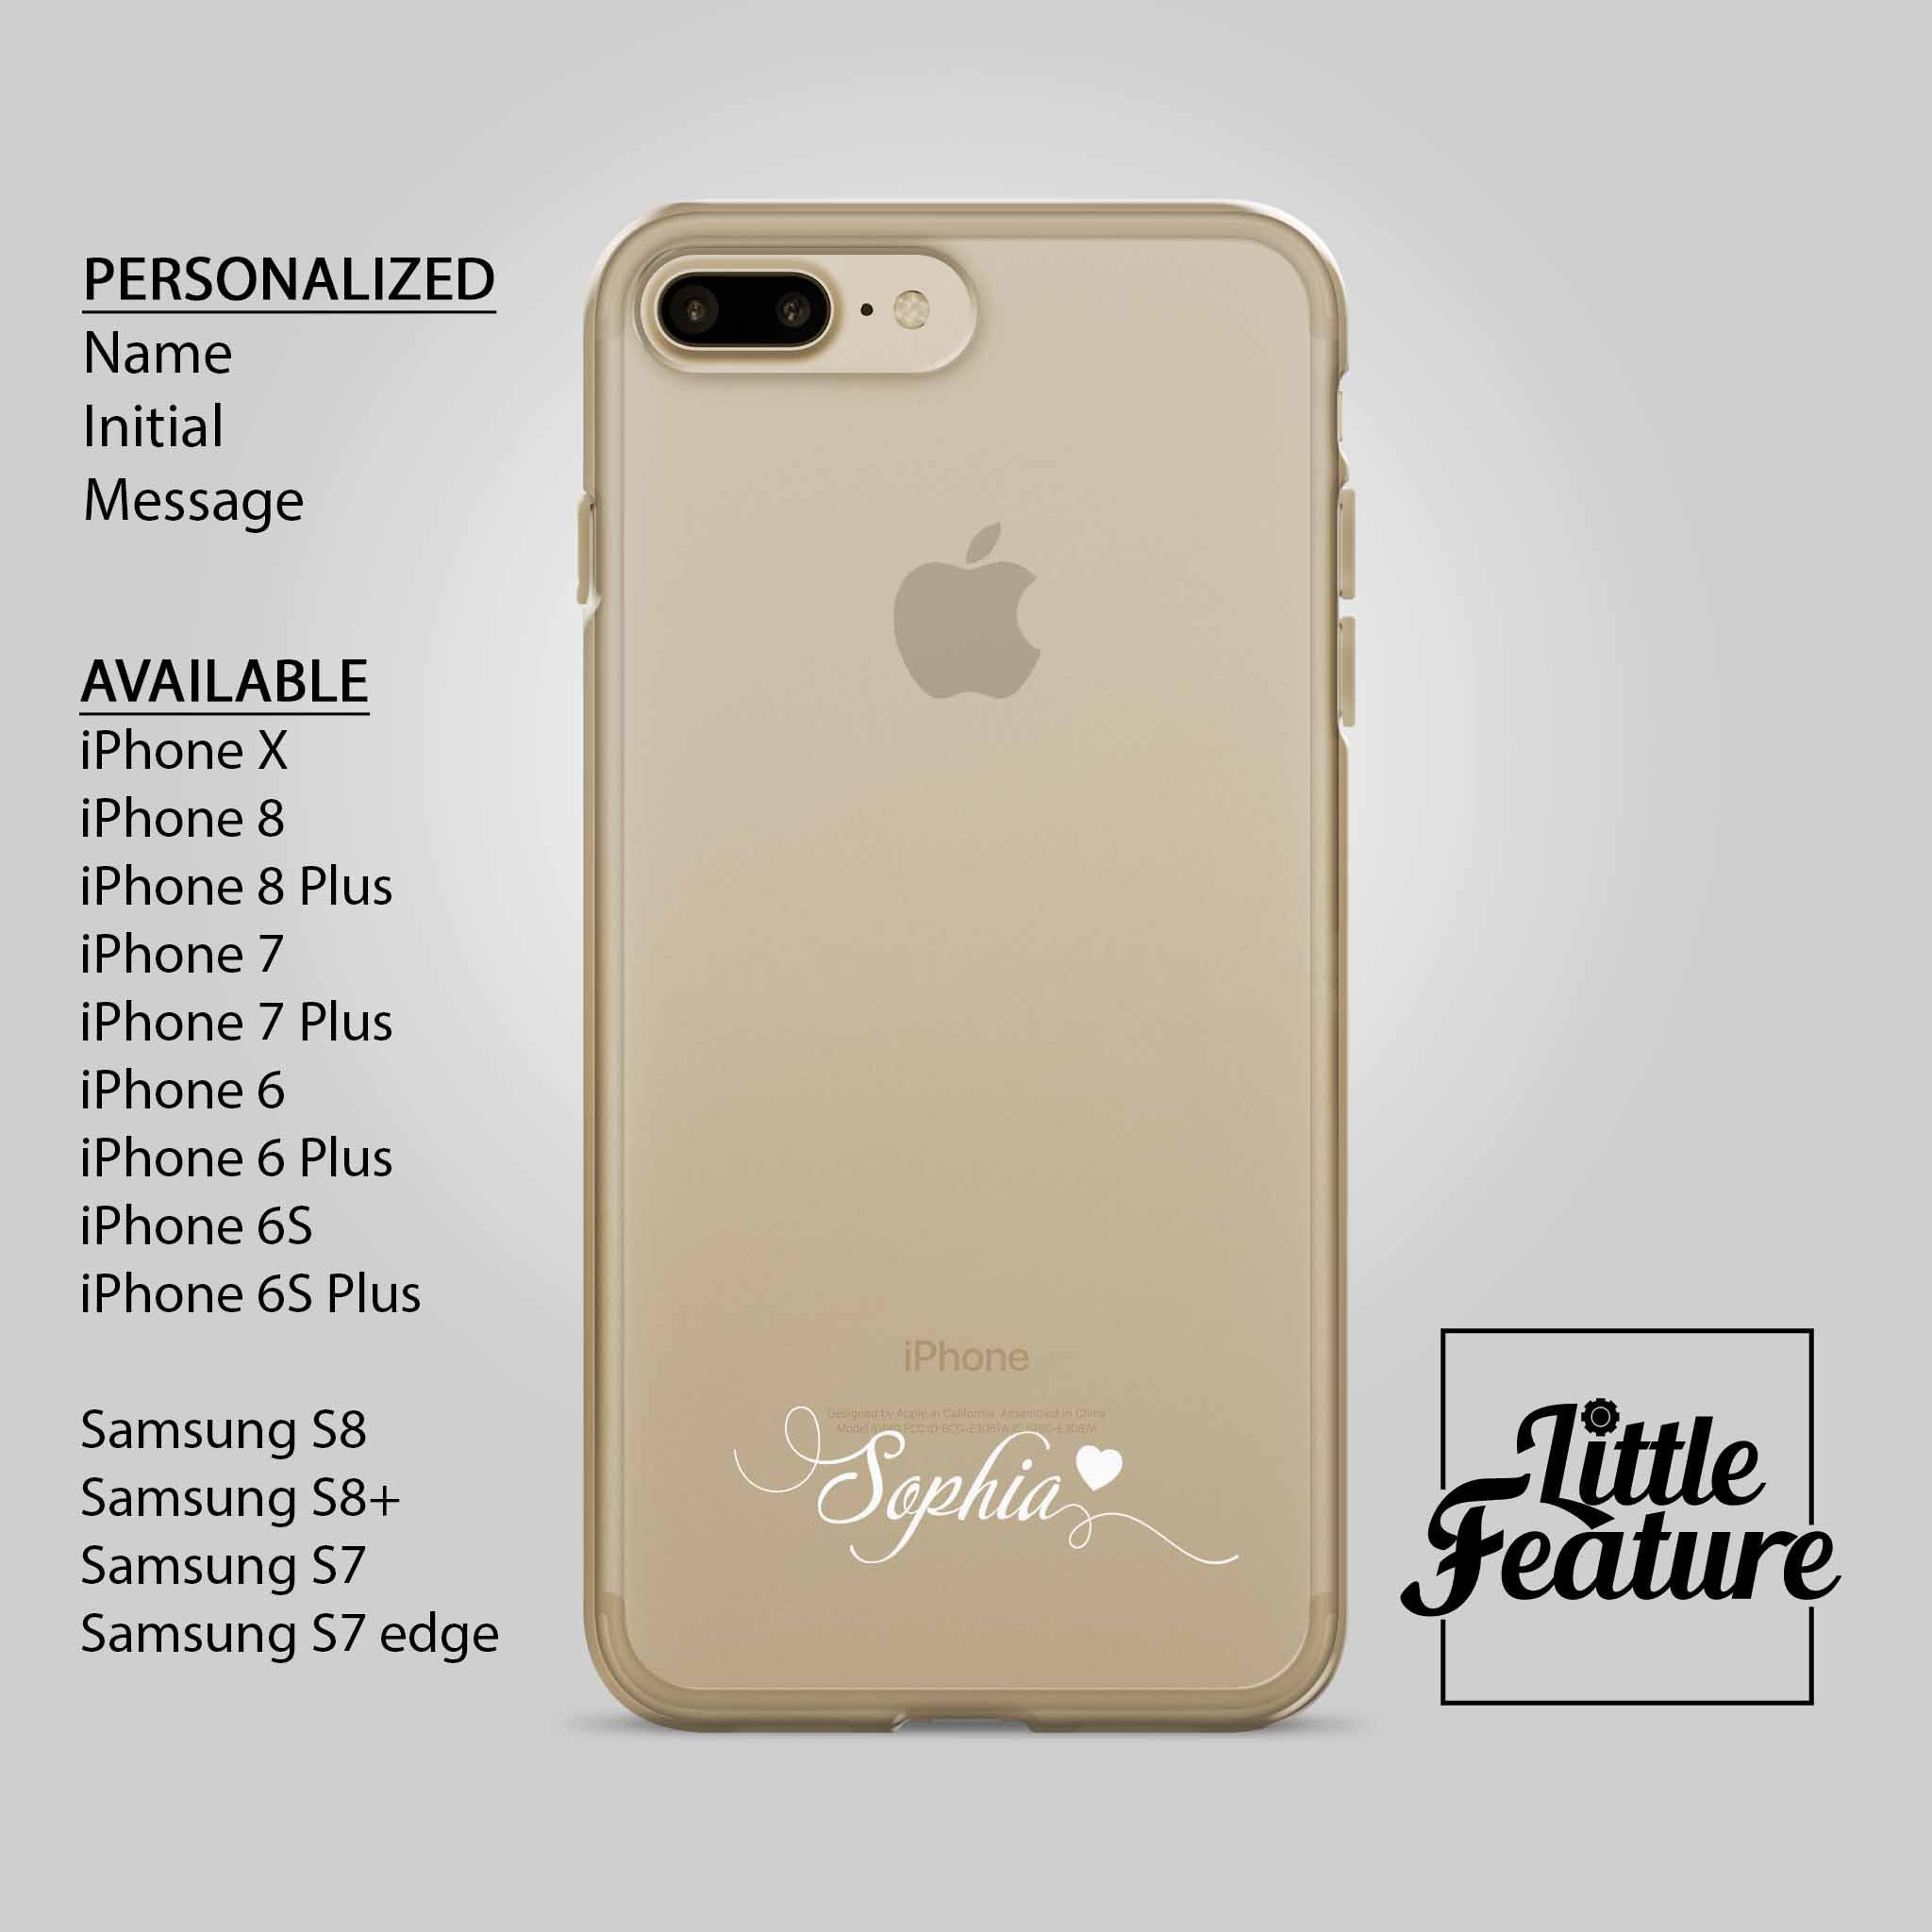 samsung s8 edge phone case personalised